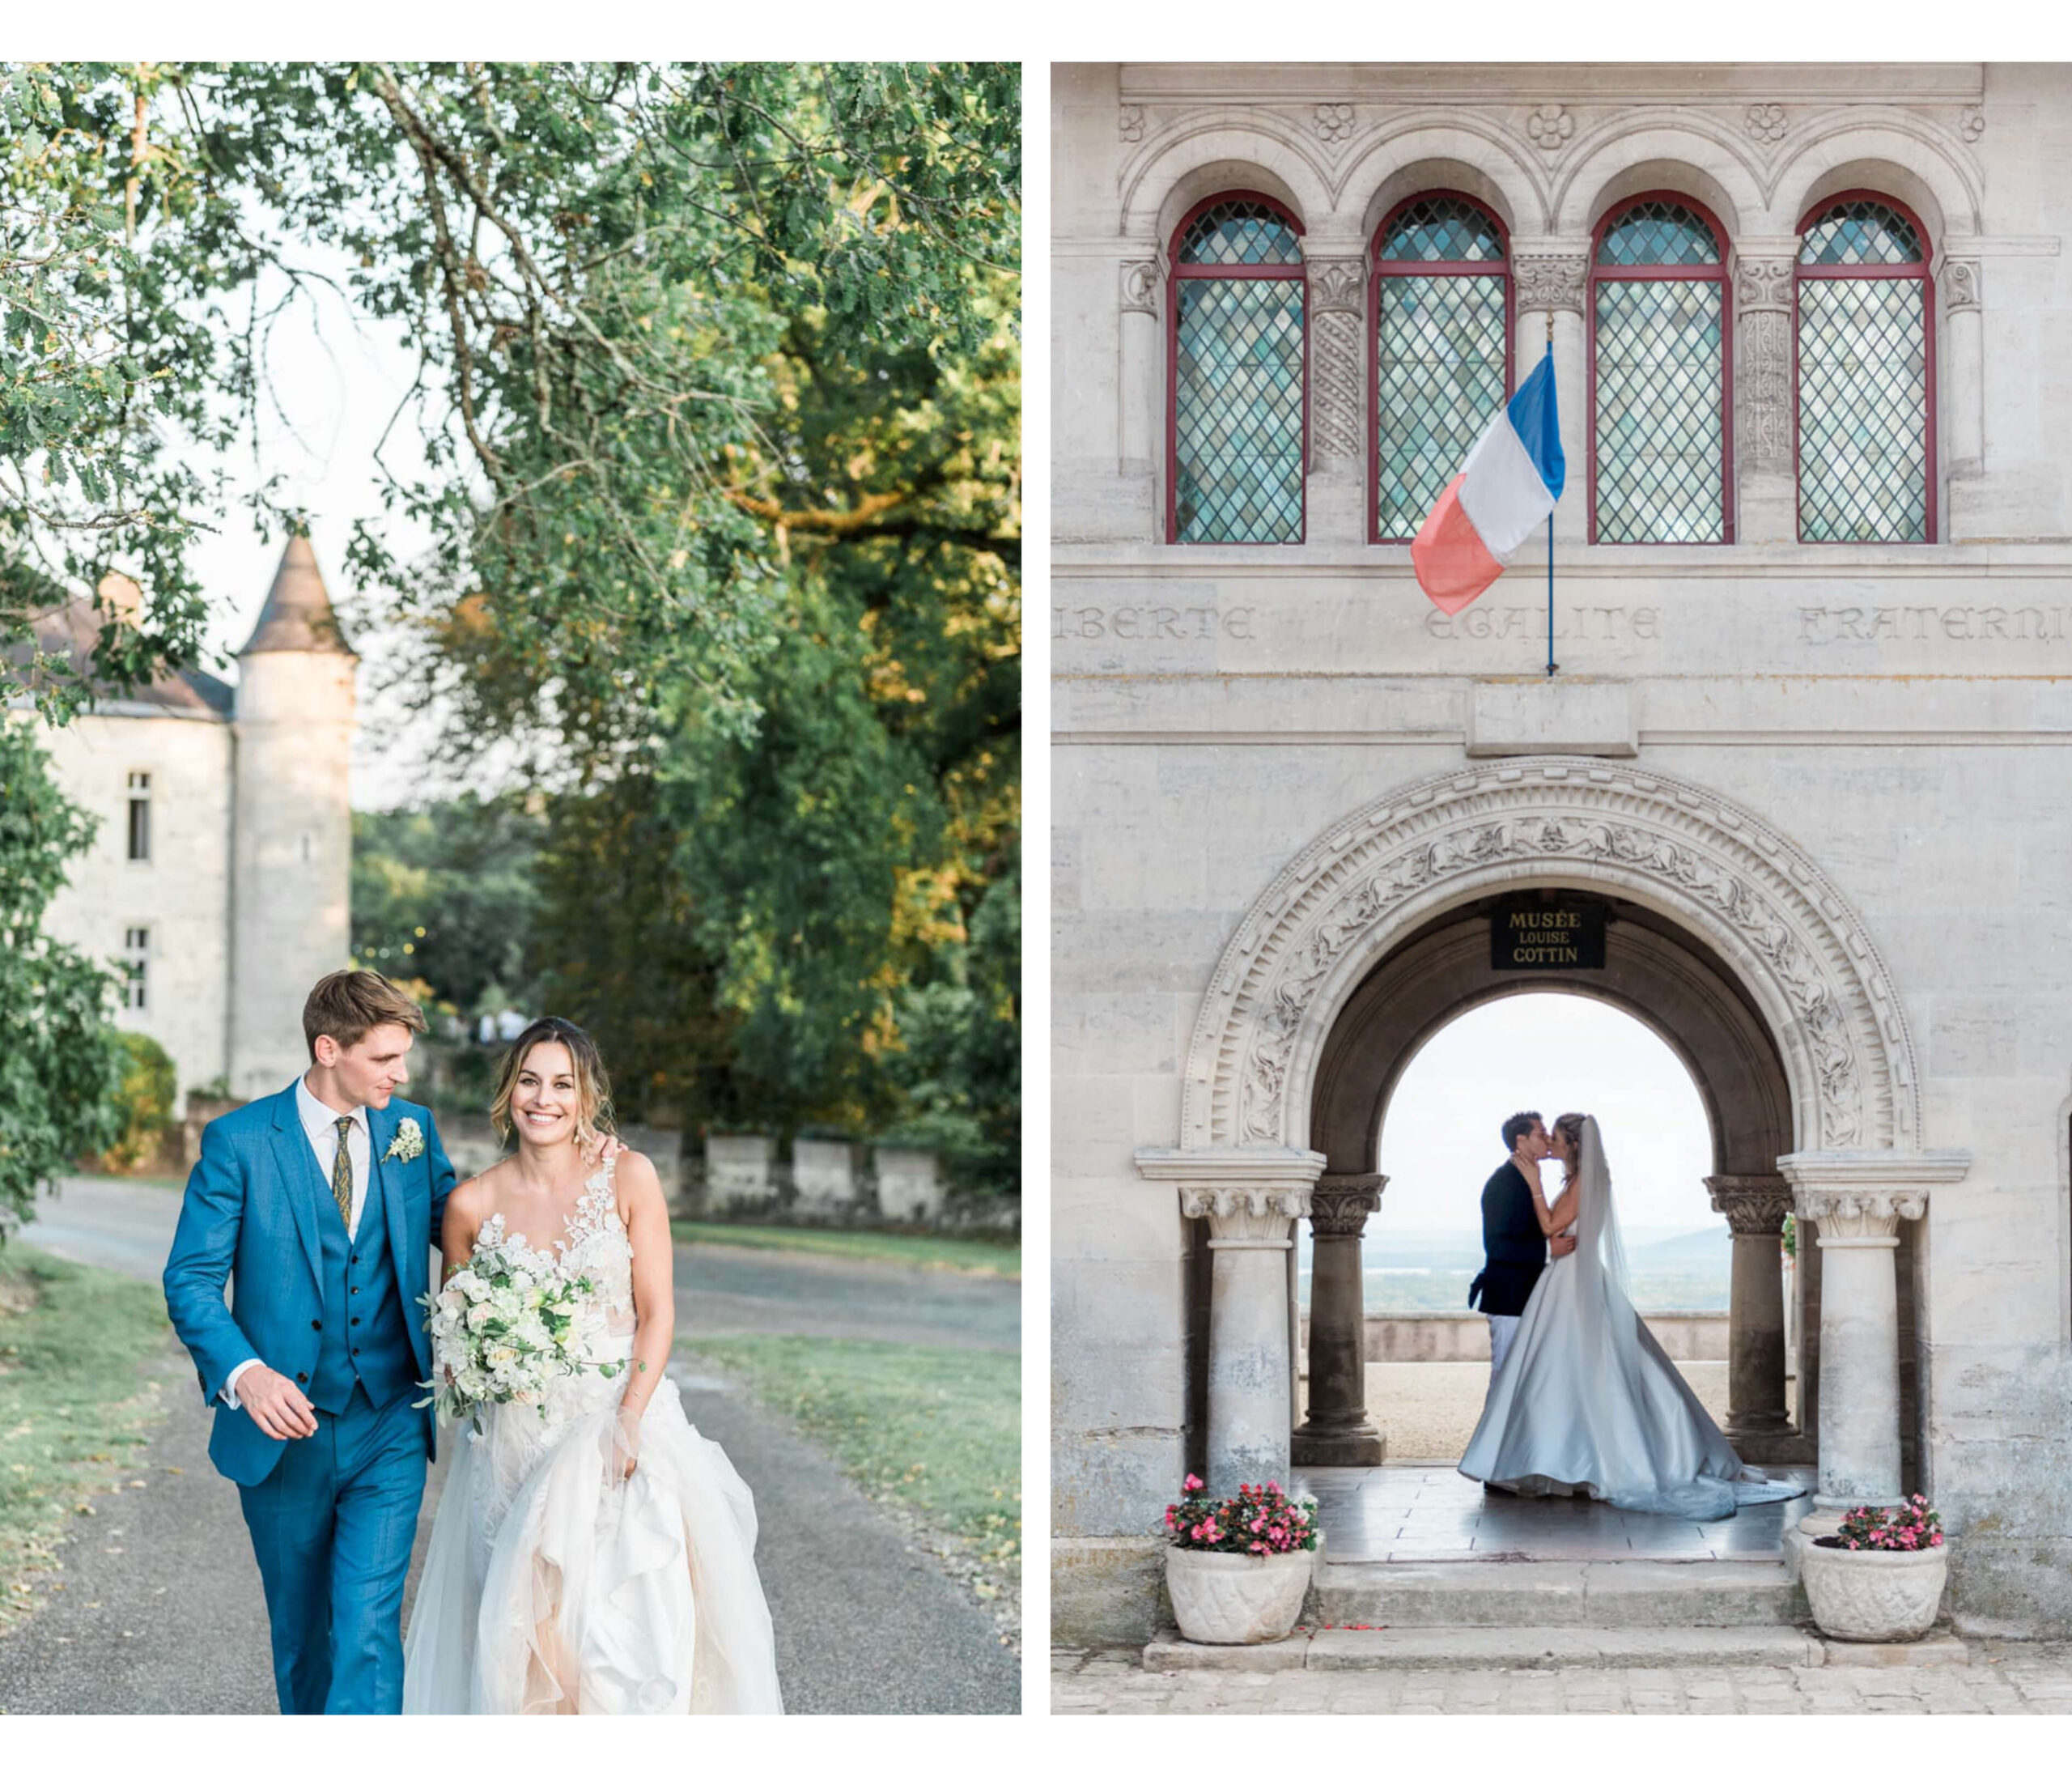 The work of an English speaking wedding photographer in France